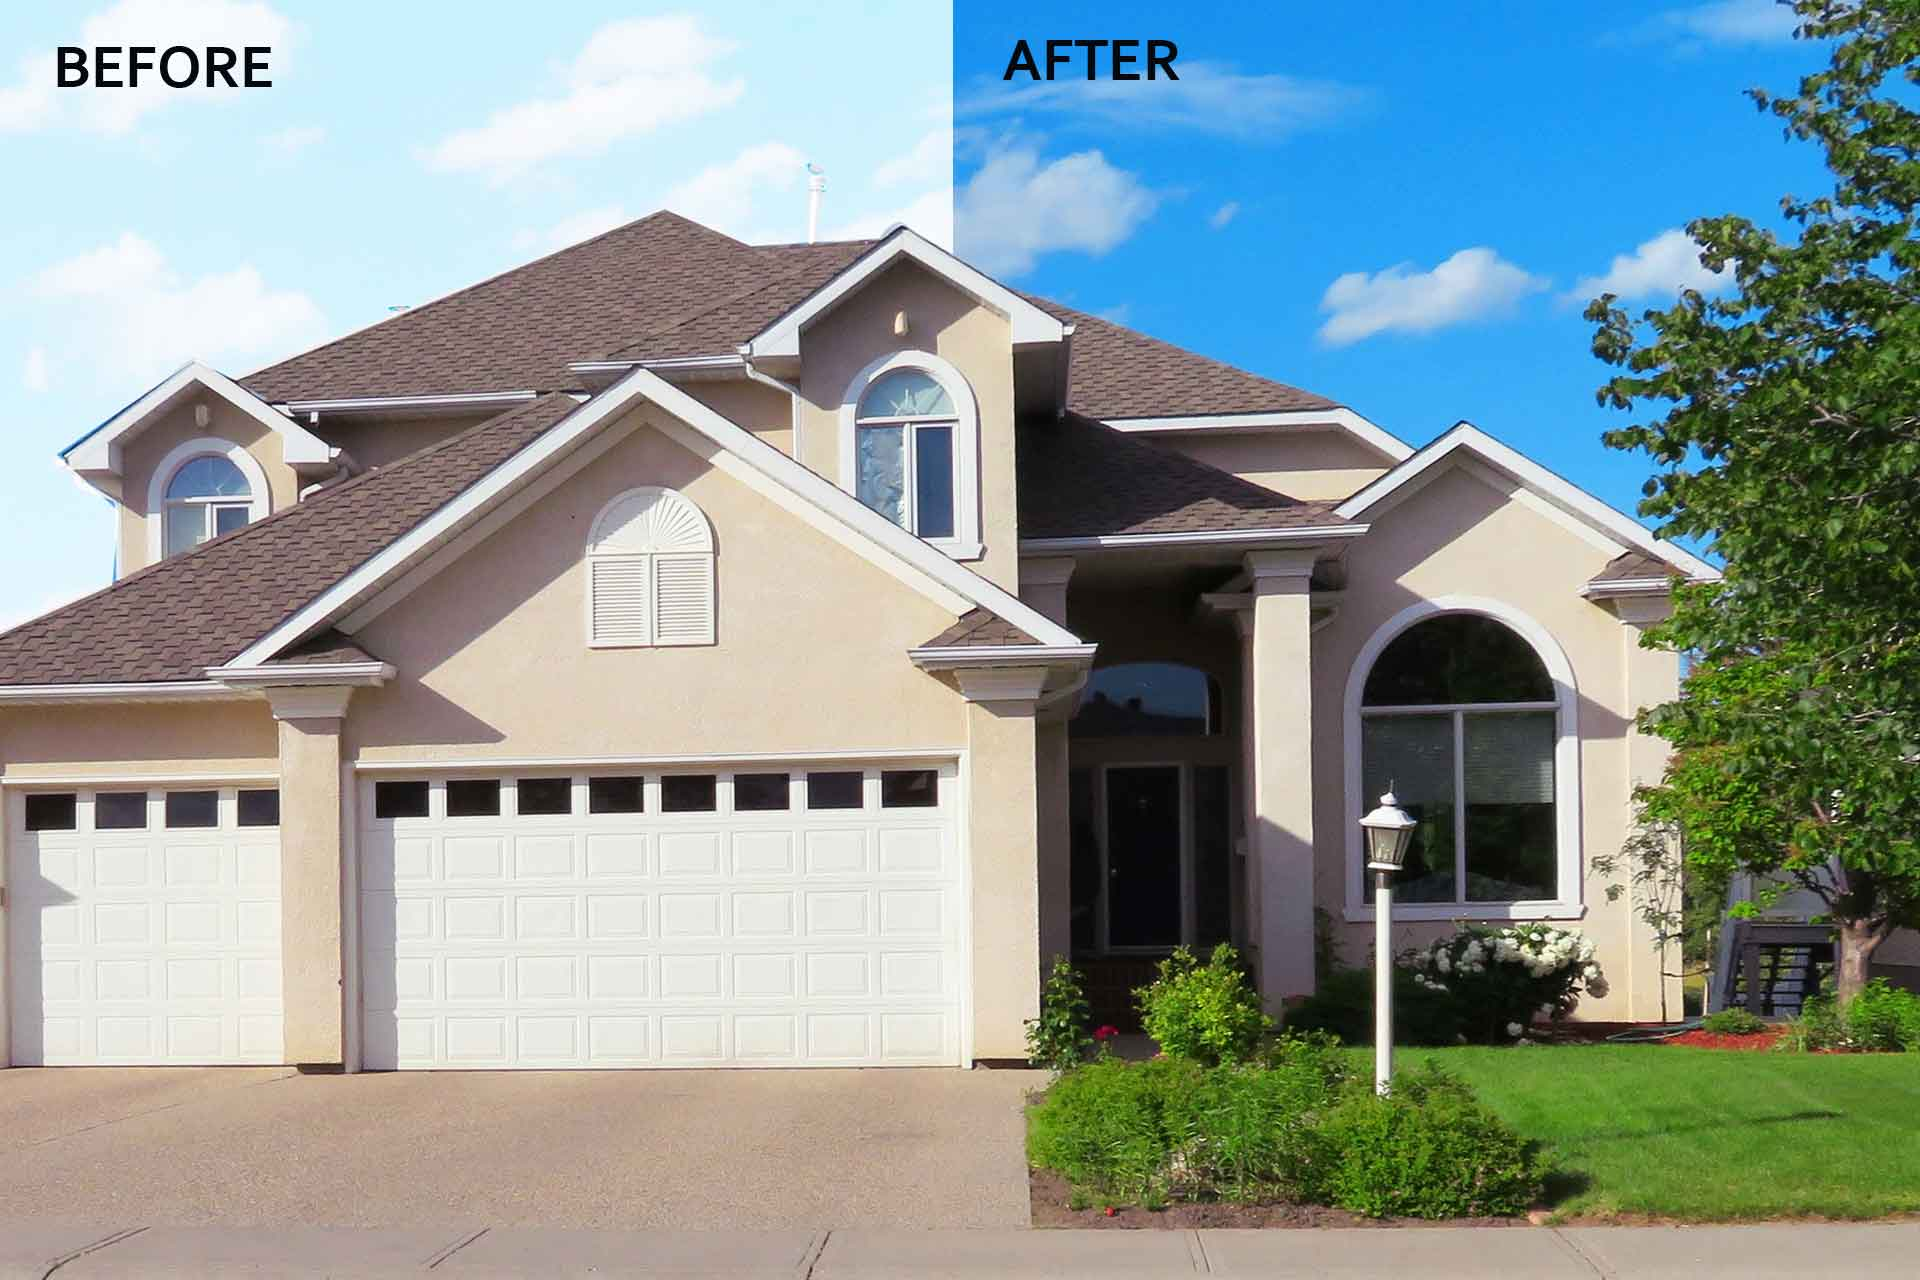 Sky Change Services to Property Images | Real Estate Sky Replacement Services